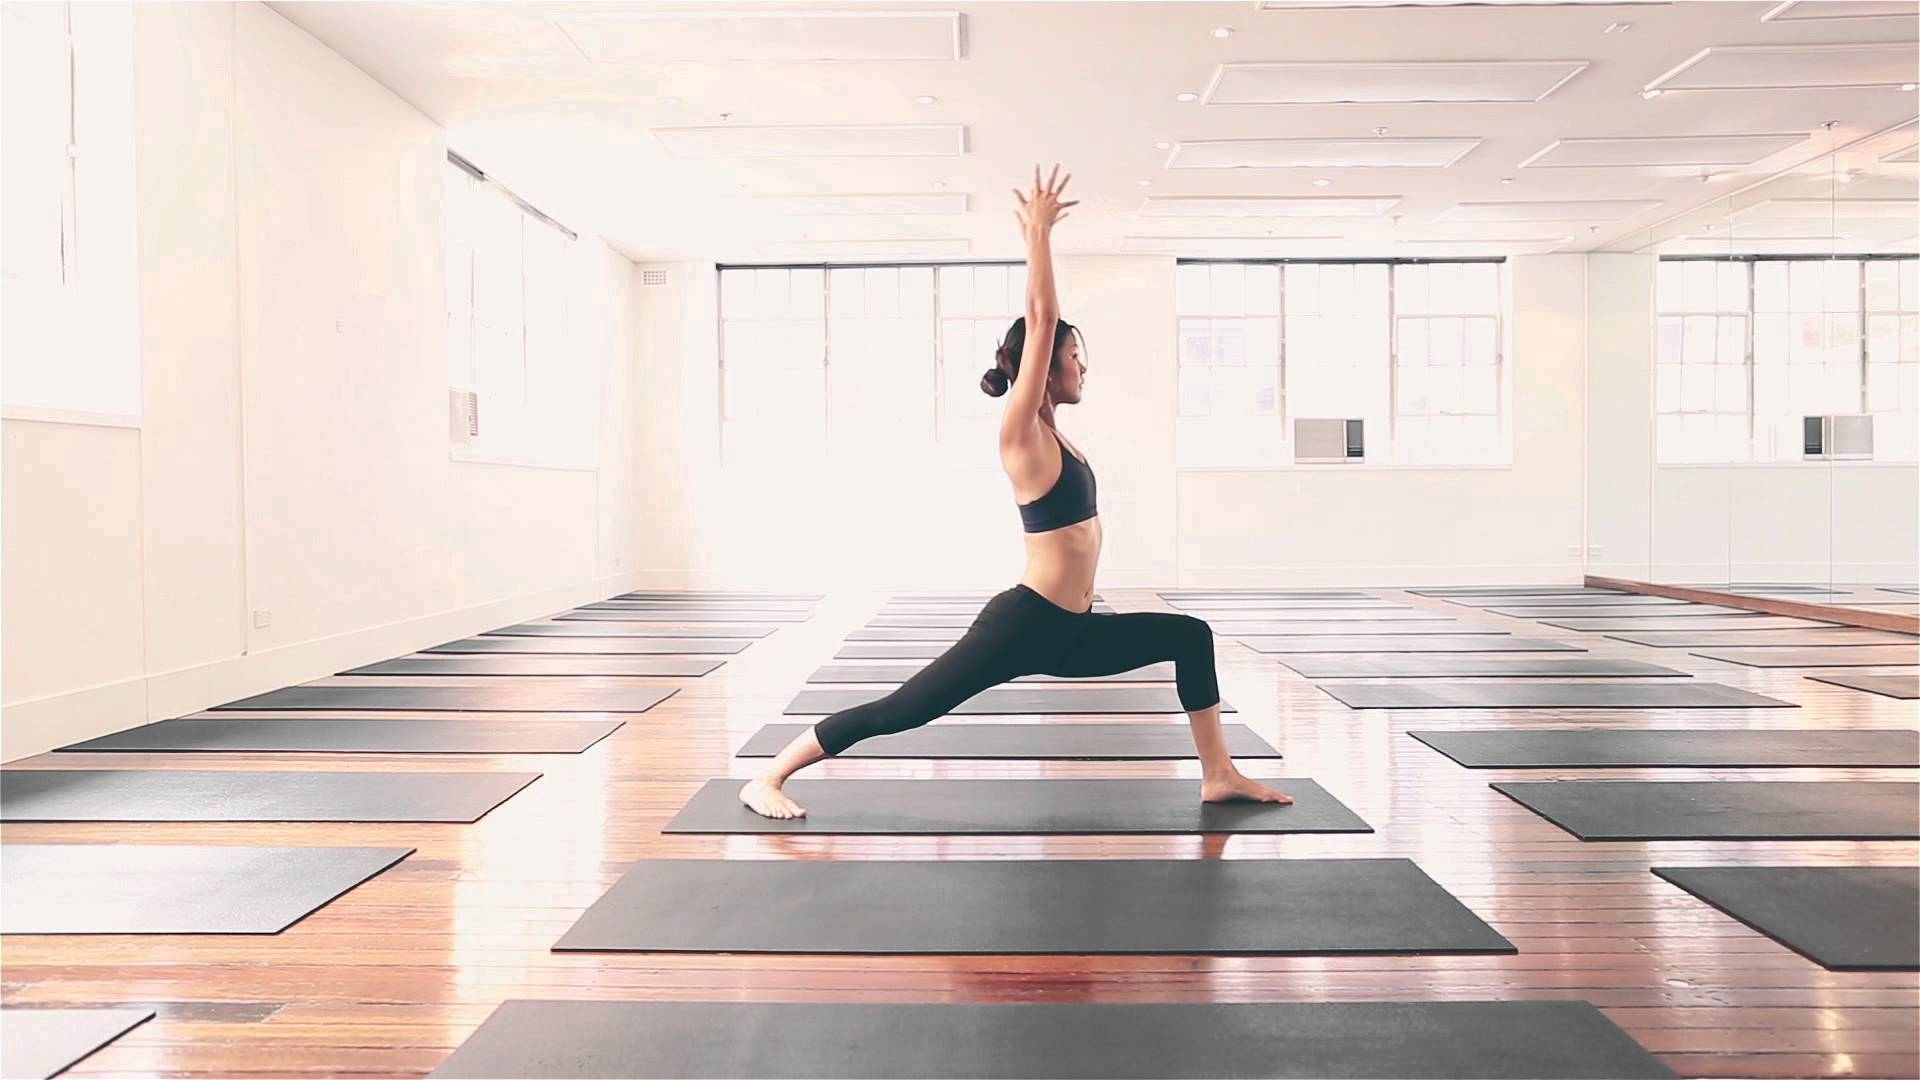 For hot yoga, try Hom Yoga's Hot Hatha class